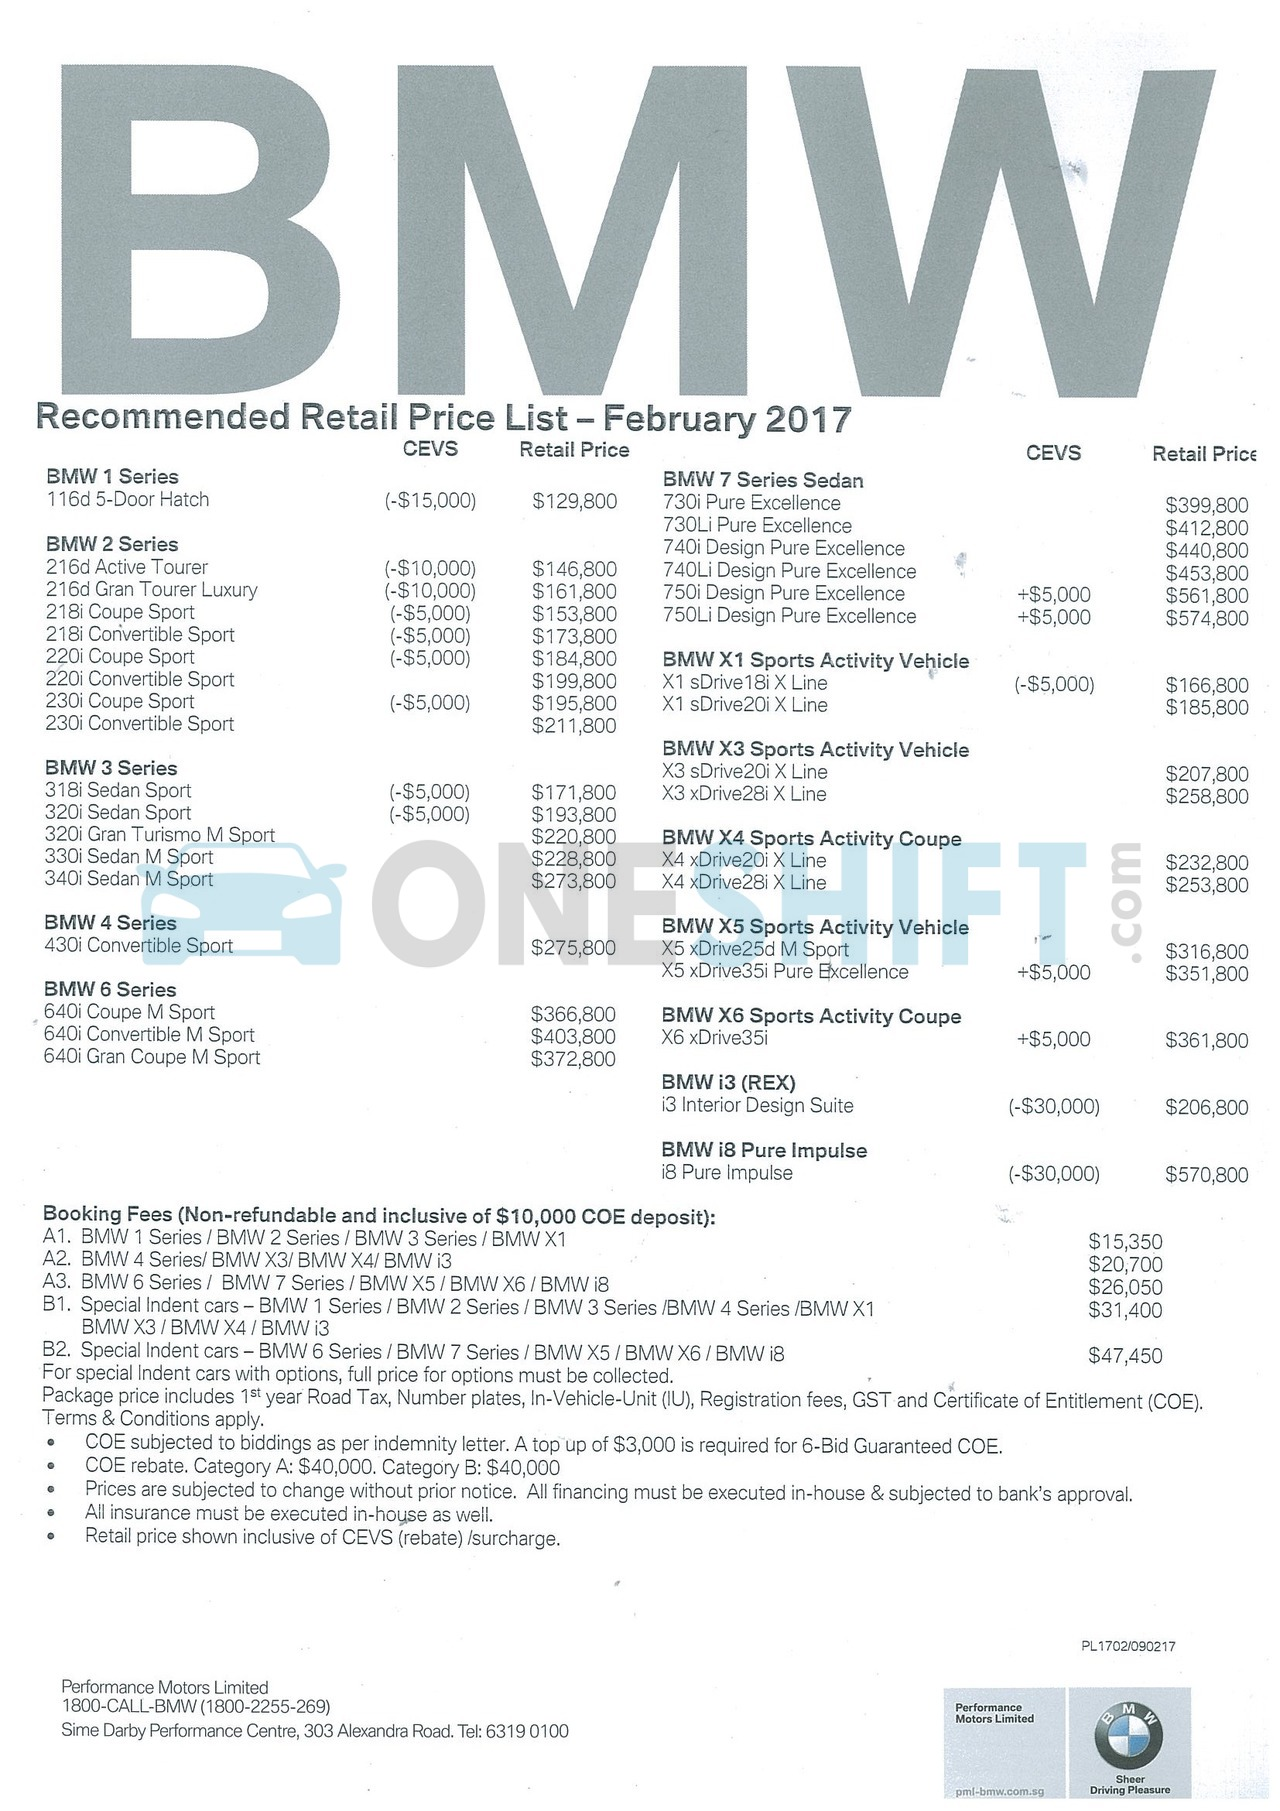 bmw Price List 2-9-2017 Page 1